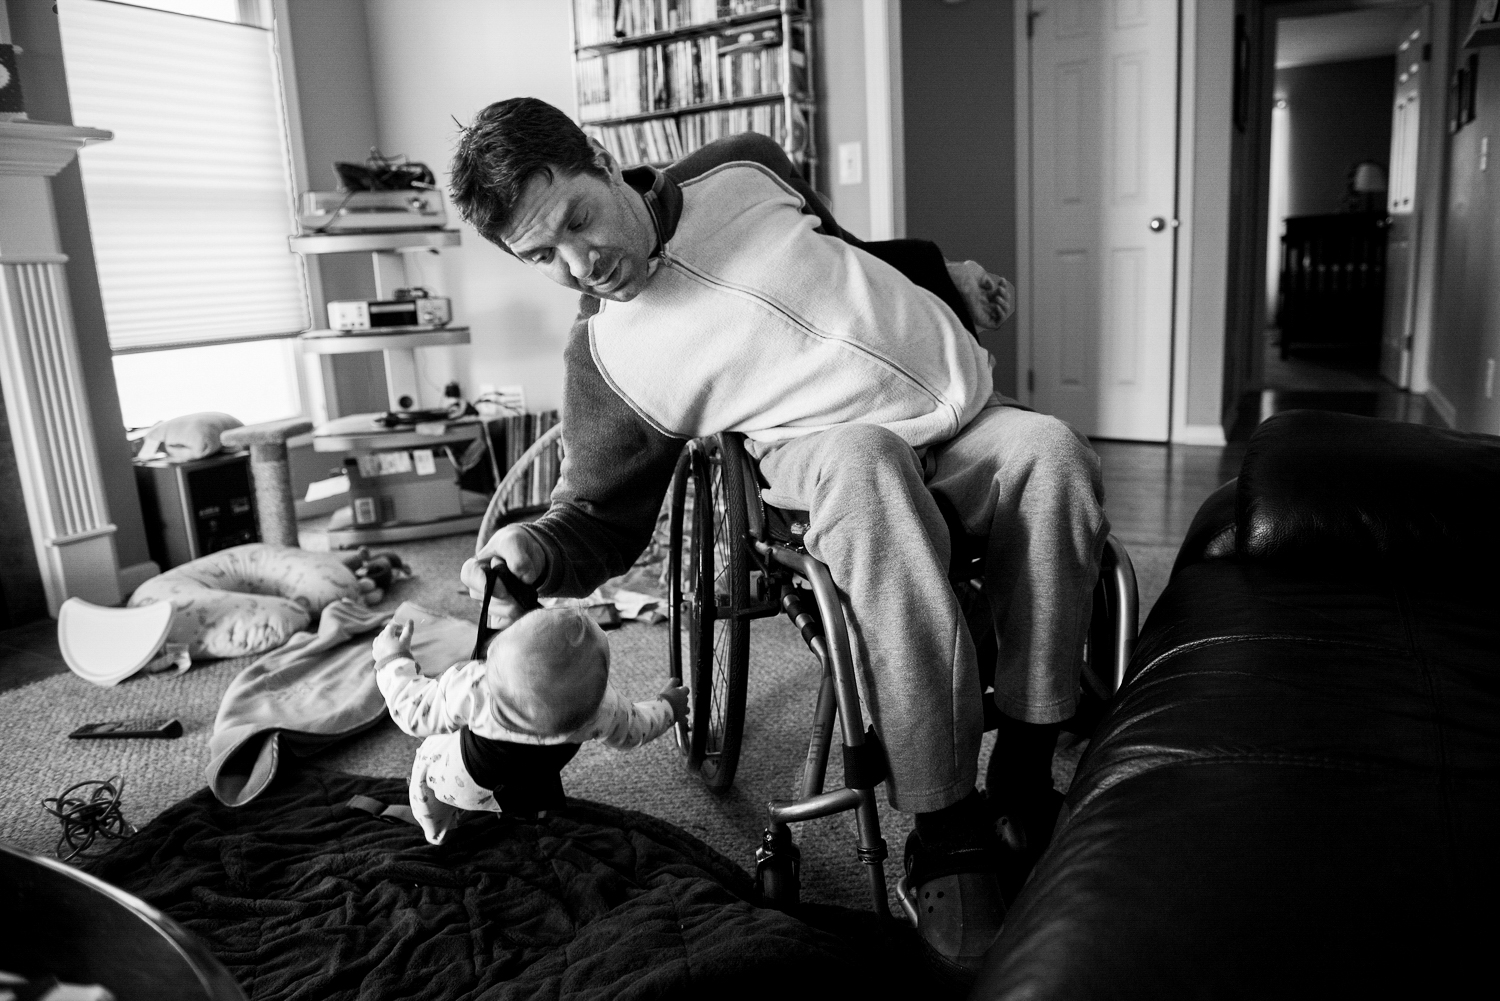 David lifts his son, Duncan onto his lap to put him down for a nap.Since David only has use of his right arm, which is weak he has created a device to lift Duncan up and down carefully to help. He worries when his son is over 25 pounds,he might not be able to lift him.